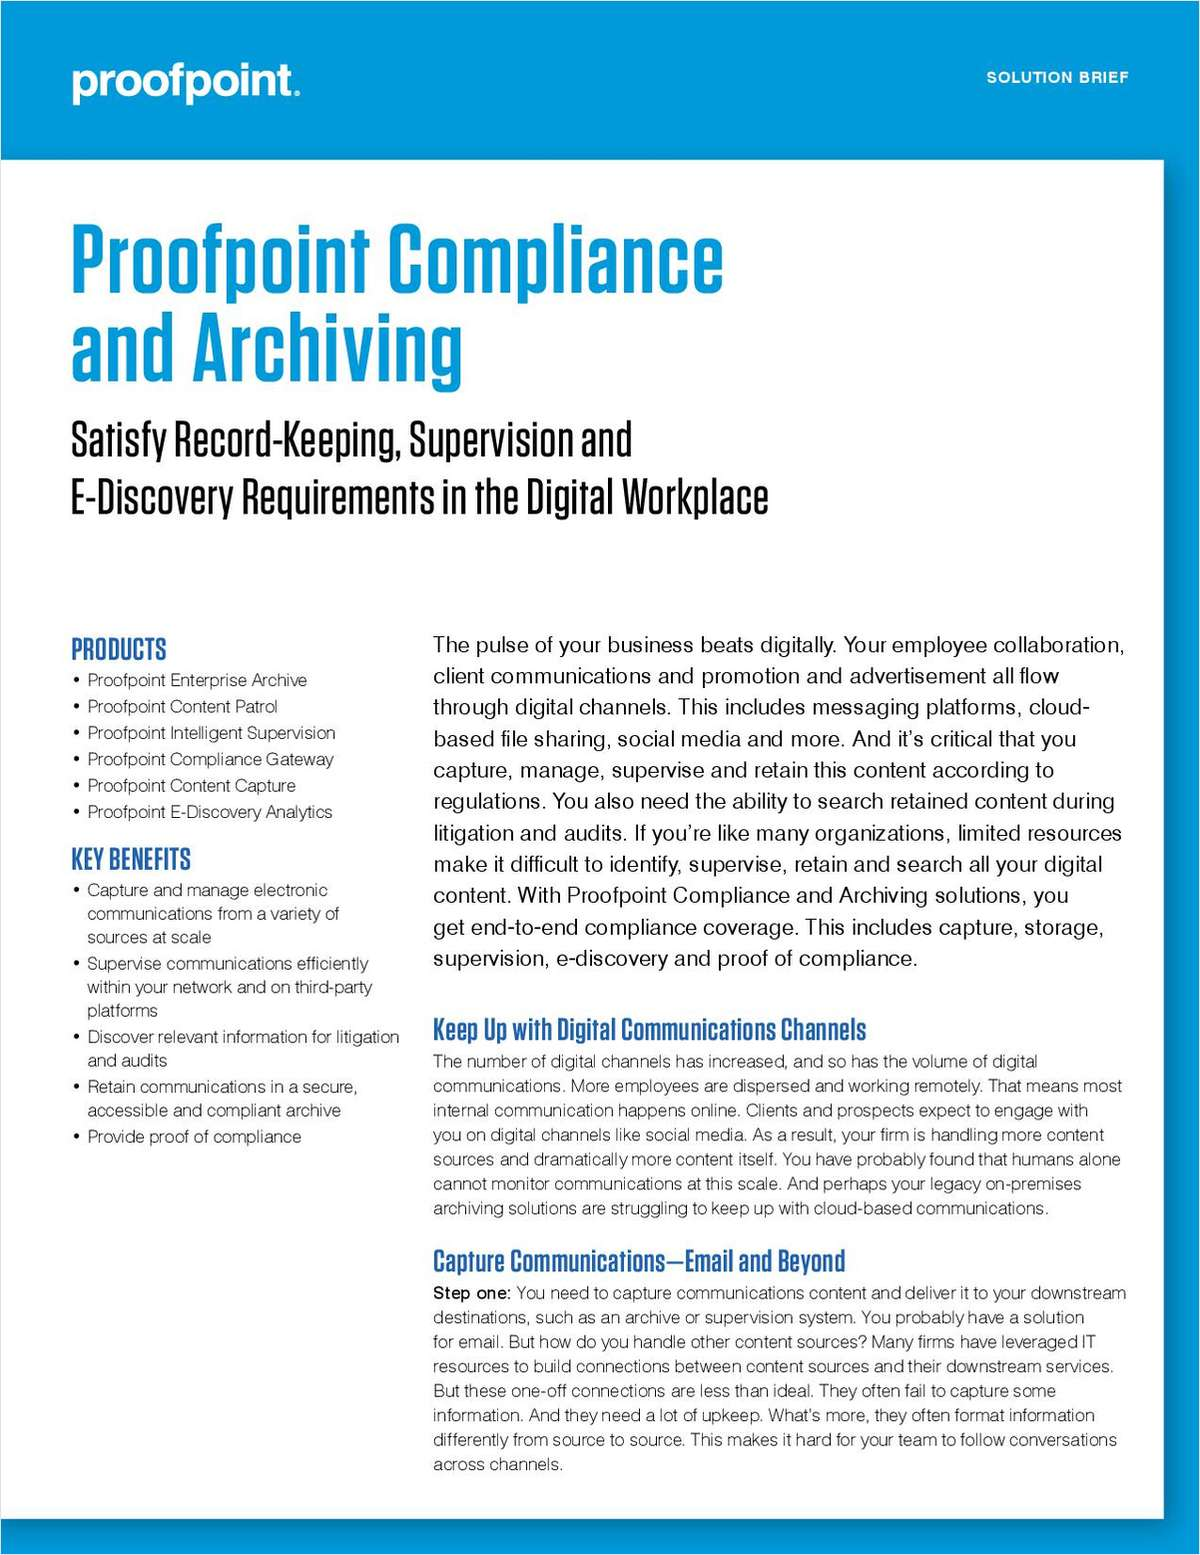 Satisfy Record-Keeping, Supervision and E-Discovery Requirements in the Digital Workplace